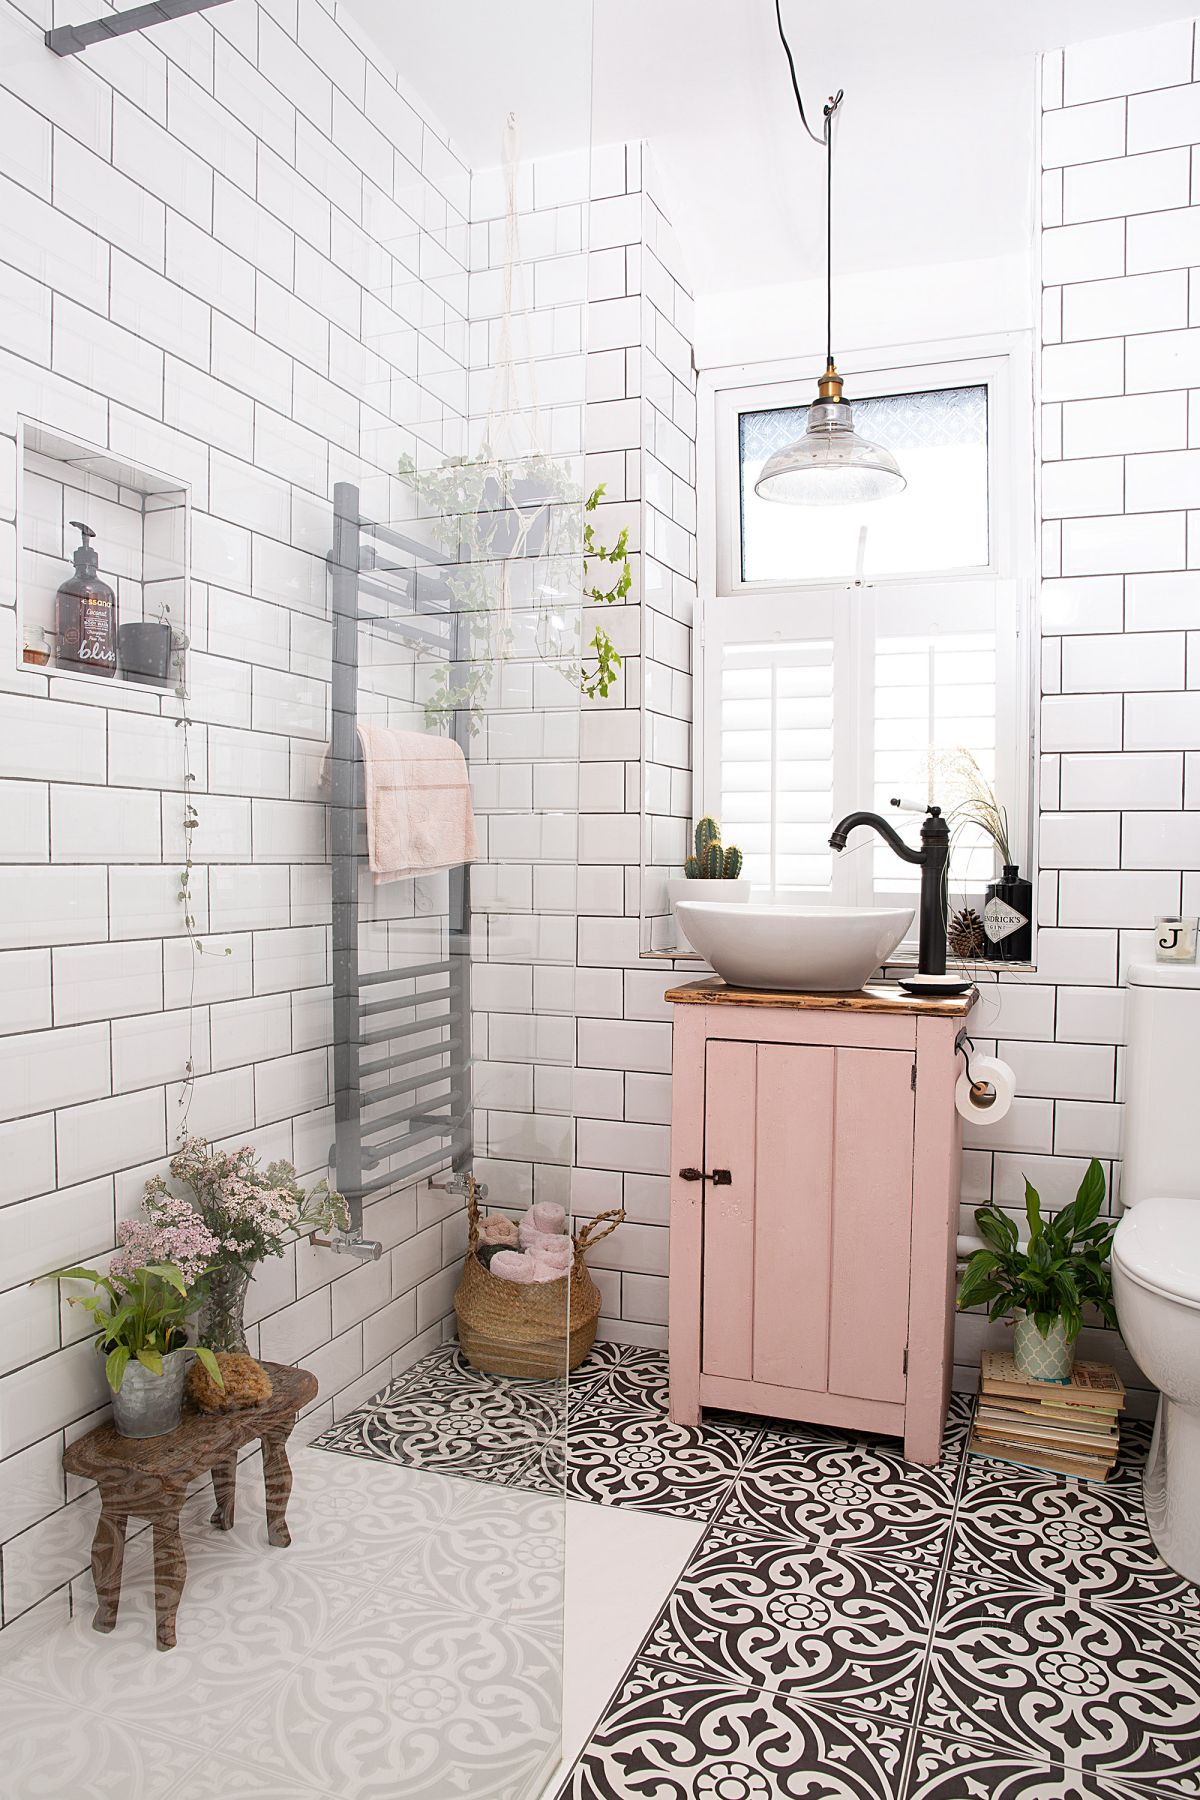 Bathrooms - cover